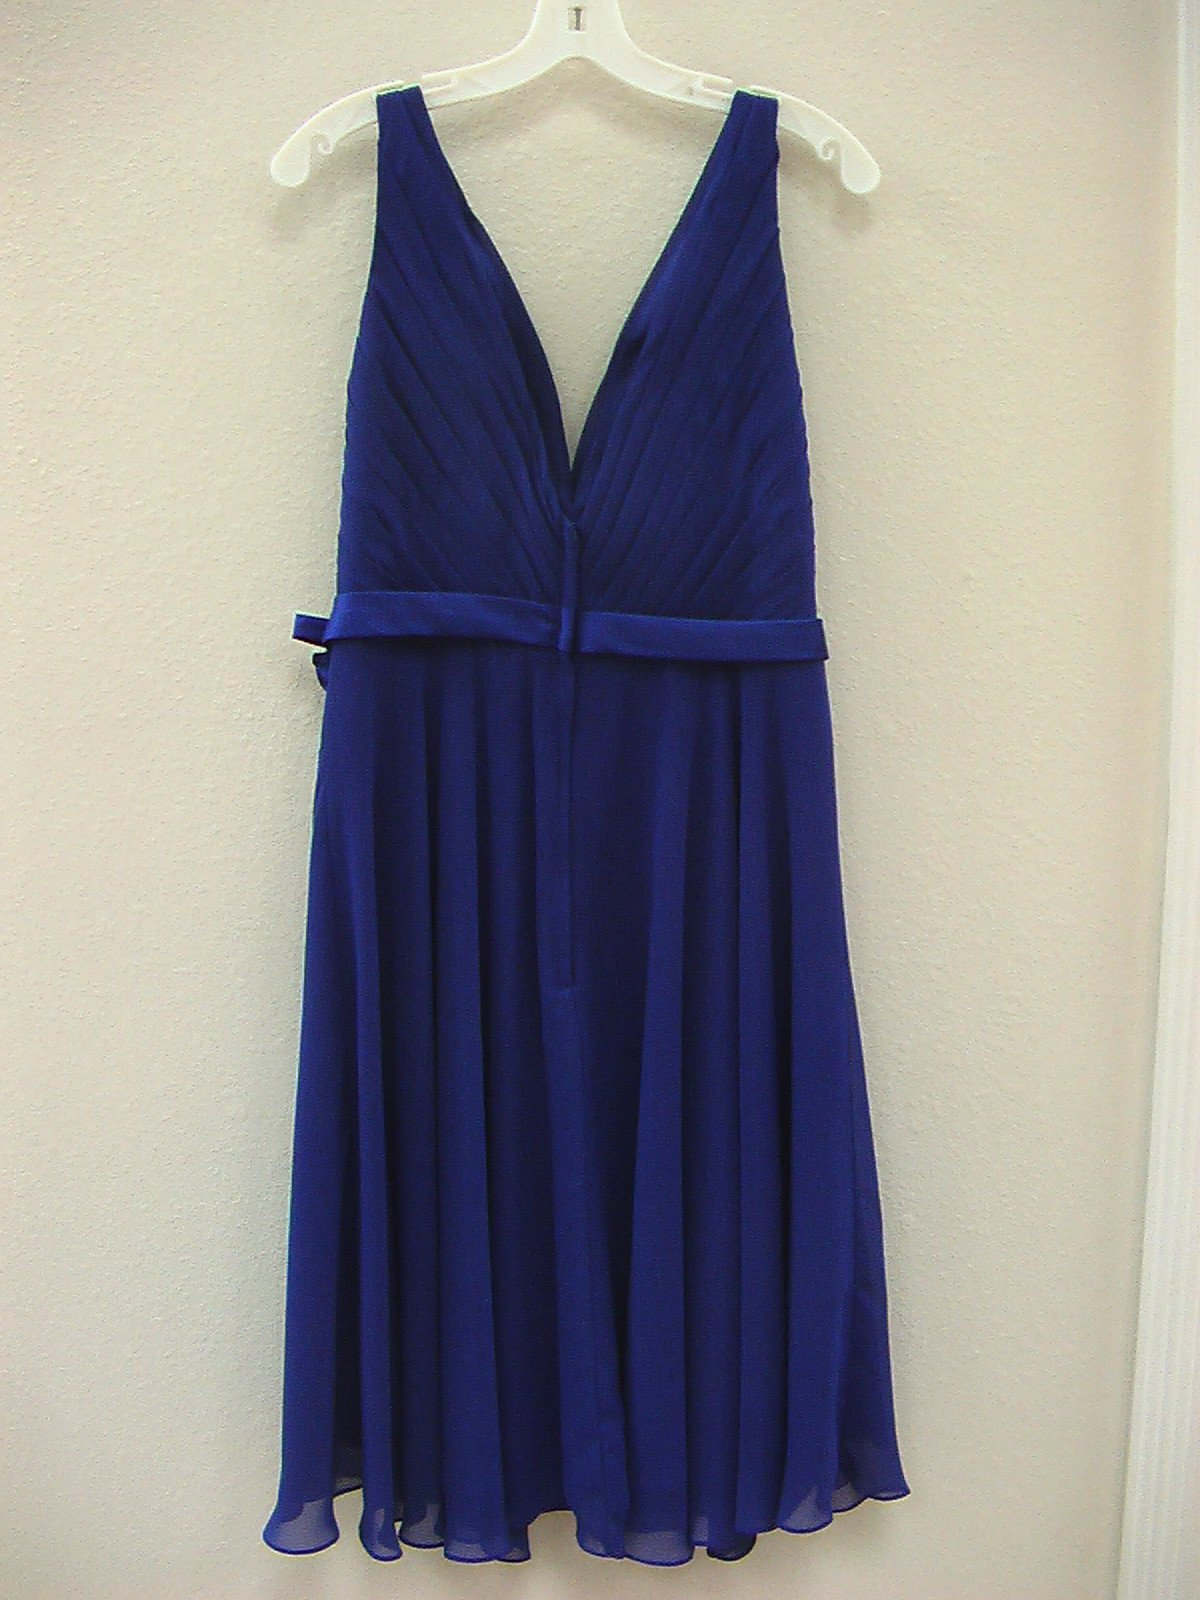 Allure 1271 Royal Size 12 In Stock Bridesmaid Dress - Tom's Bridal